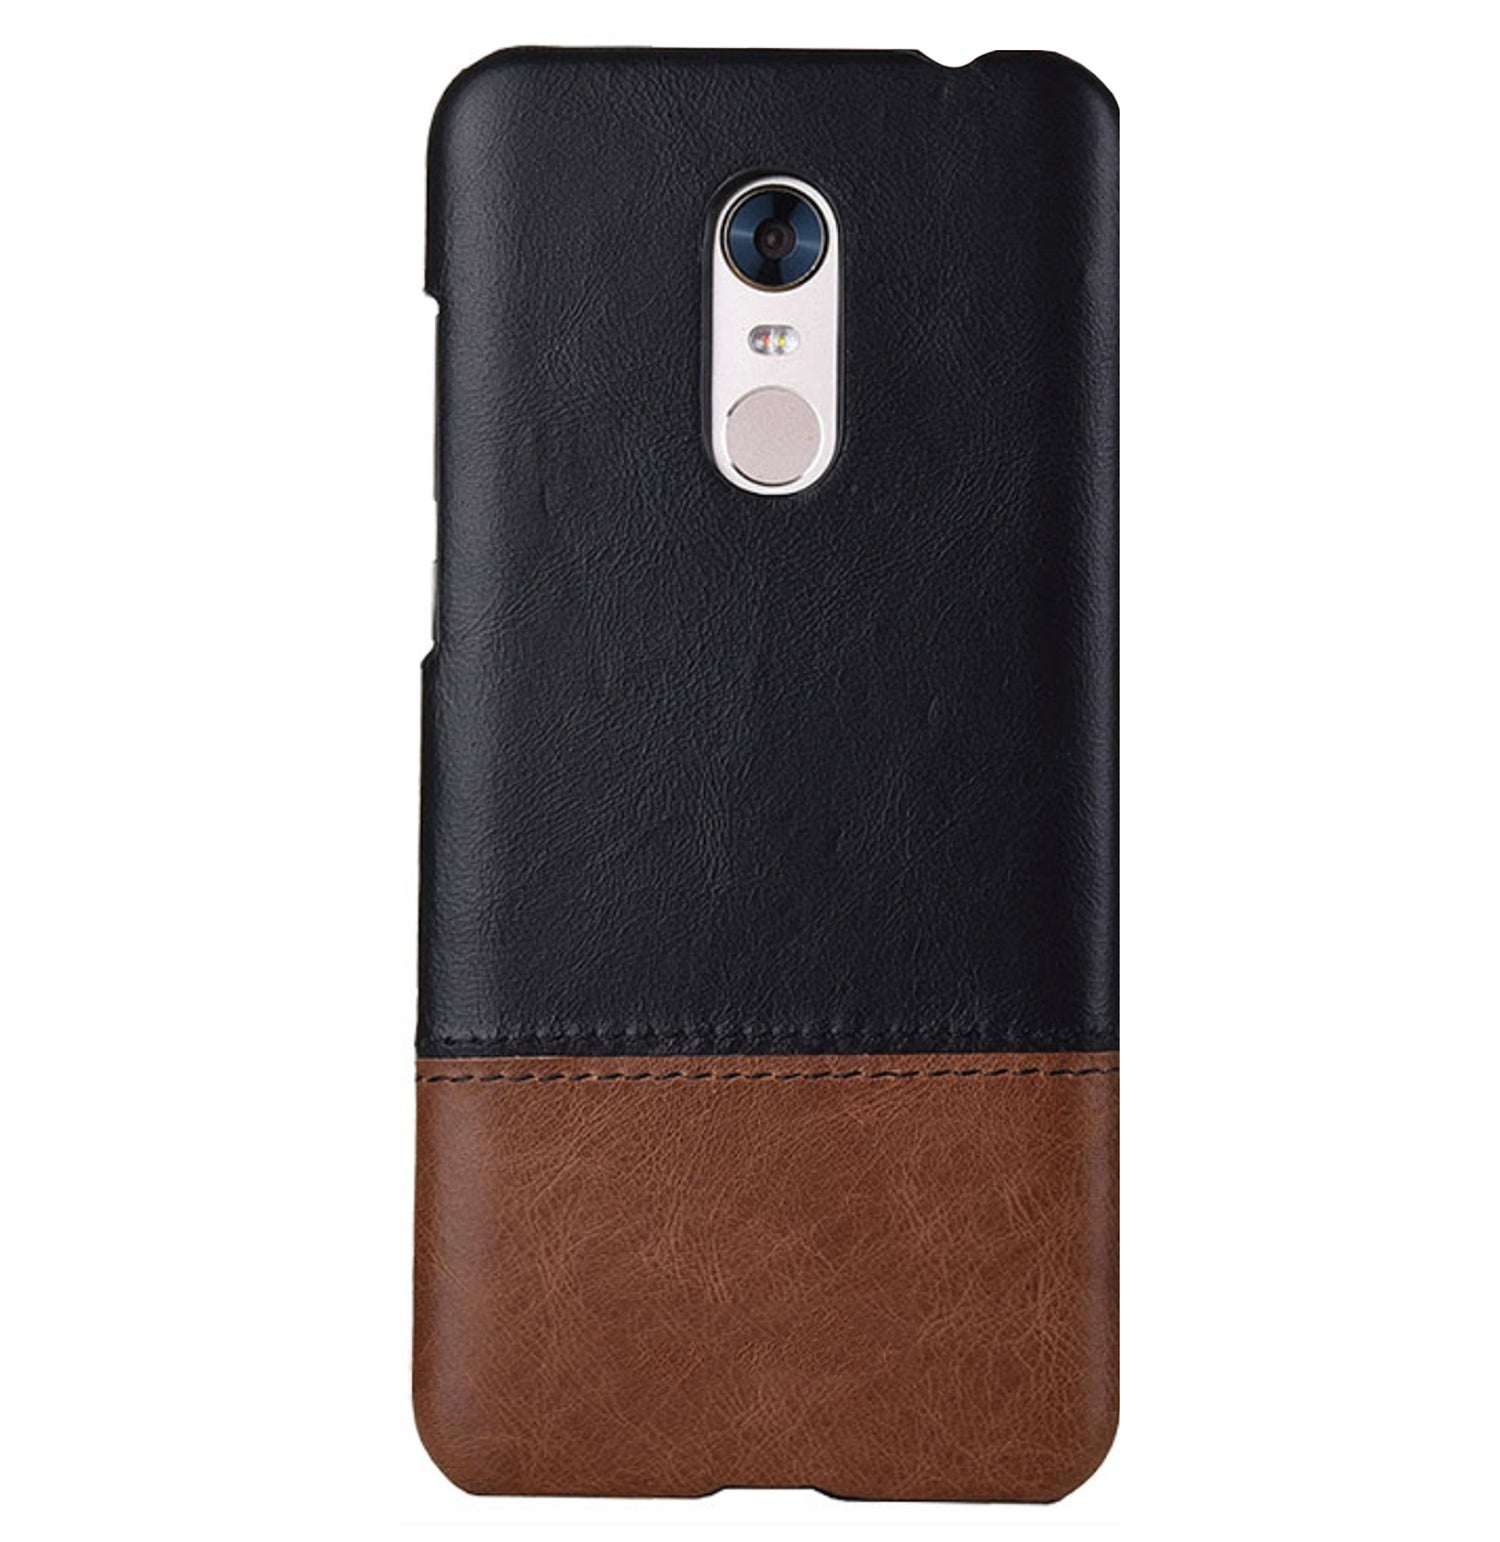 Genuine Leather Dual Color Hand Stitched Premium Protective Case Cover for Xiaomi Redmi Note 5 - Black , Brown - Mobizang